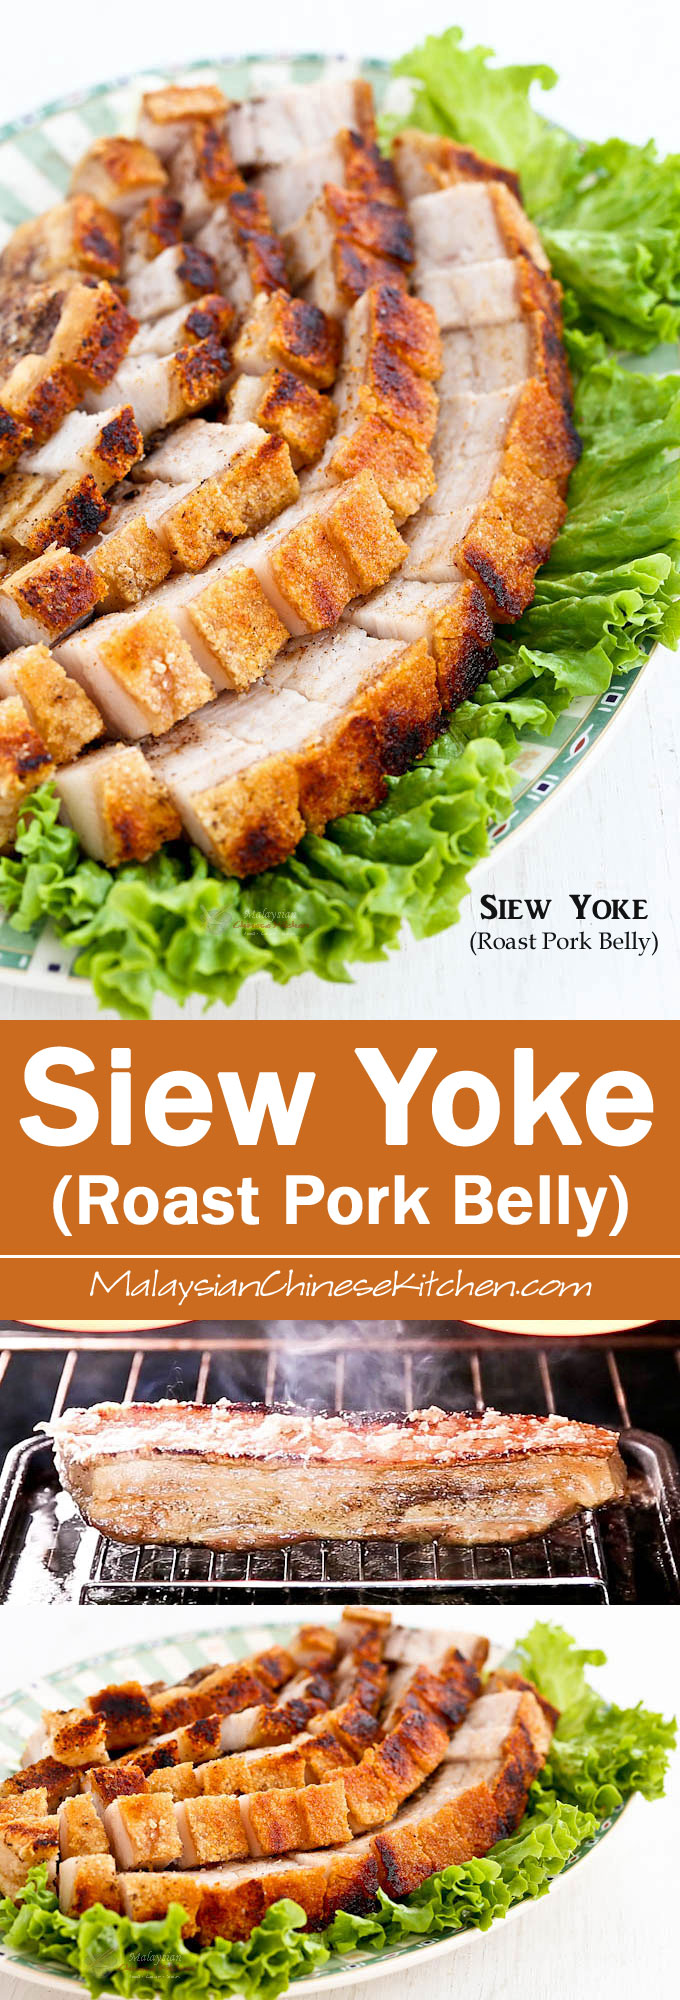 Easy to prepare Siew Yoke (Roast Pork Belly) with a perfectly crisp crackling. Delicious served with steamed rice and perfect for any occasion or festival. | MalaysianChineseKitchen.com